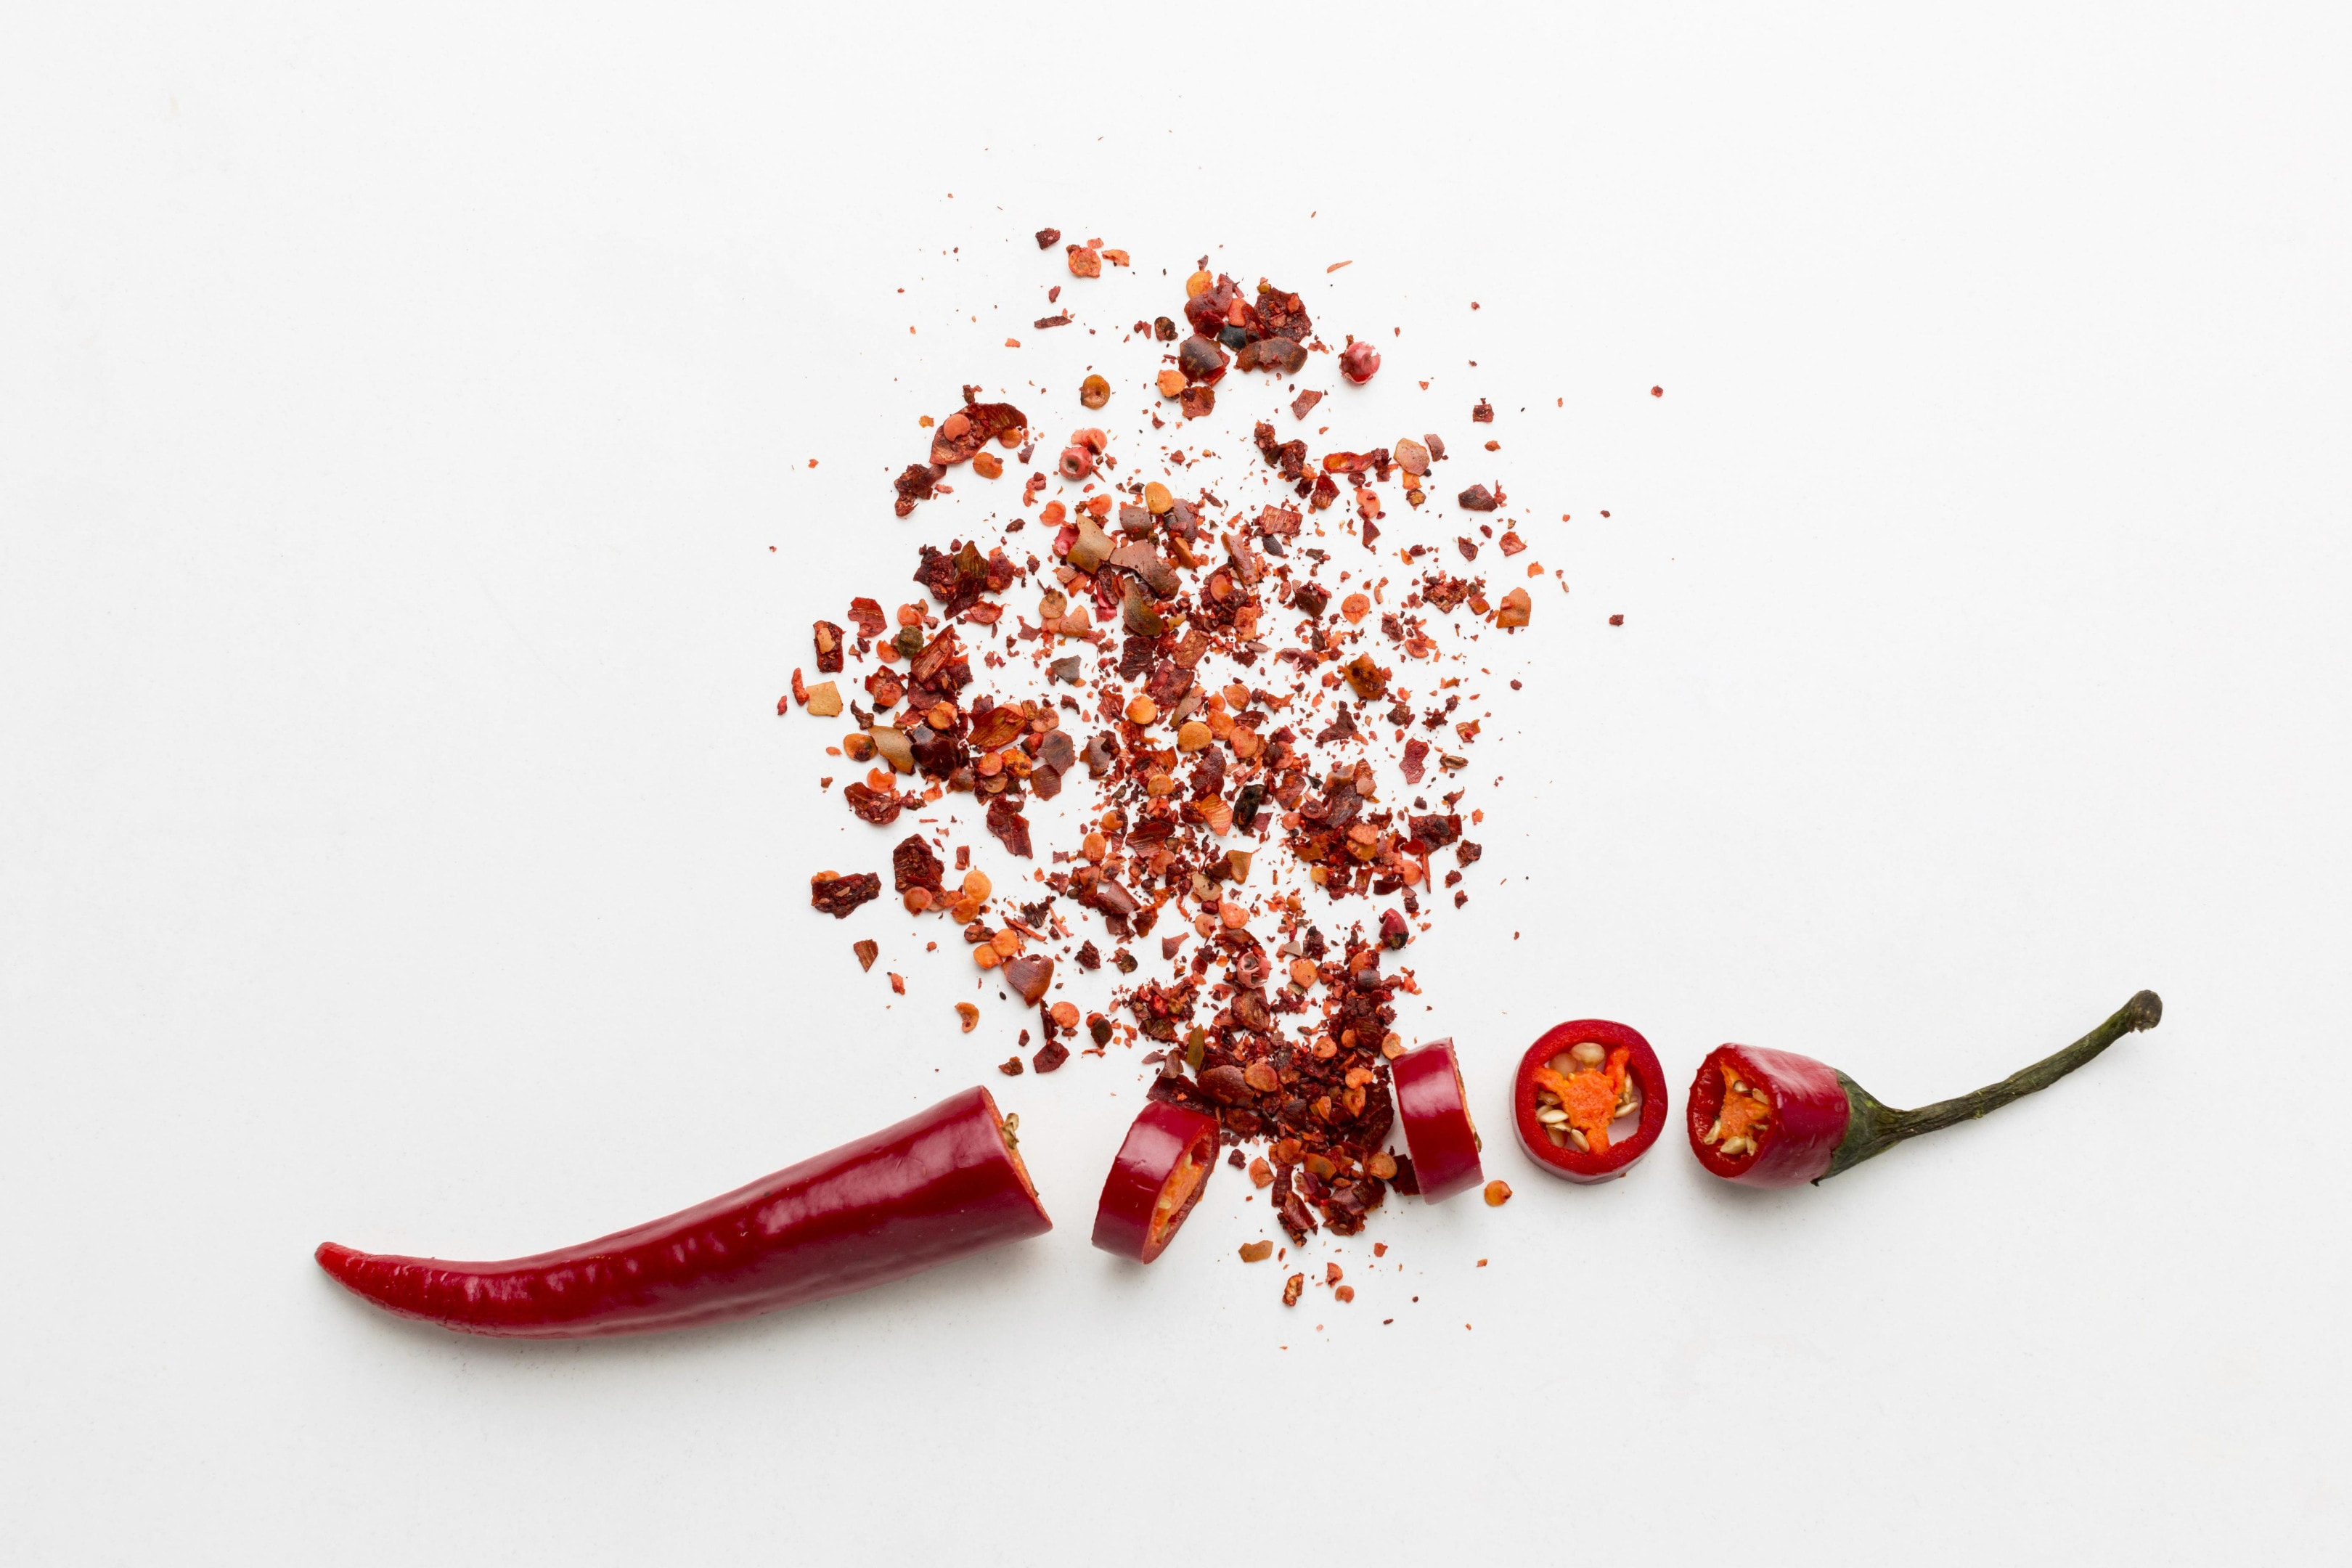 Chilli pepper flakes with fresh pepper